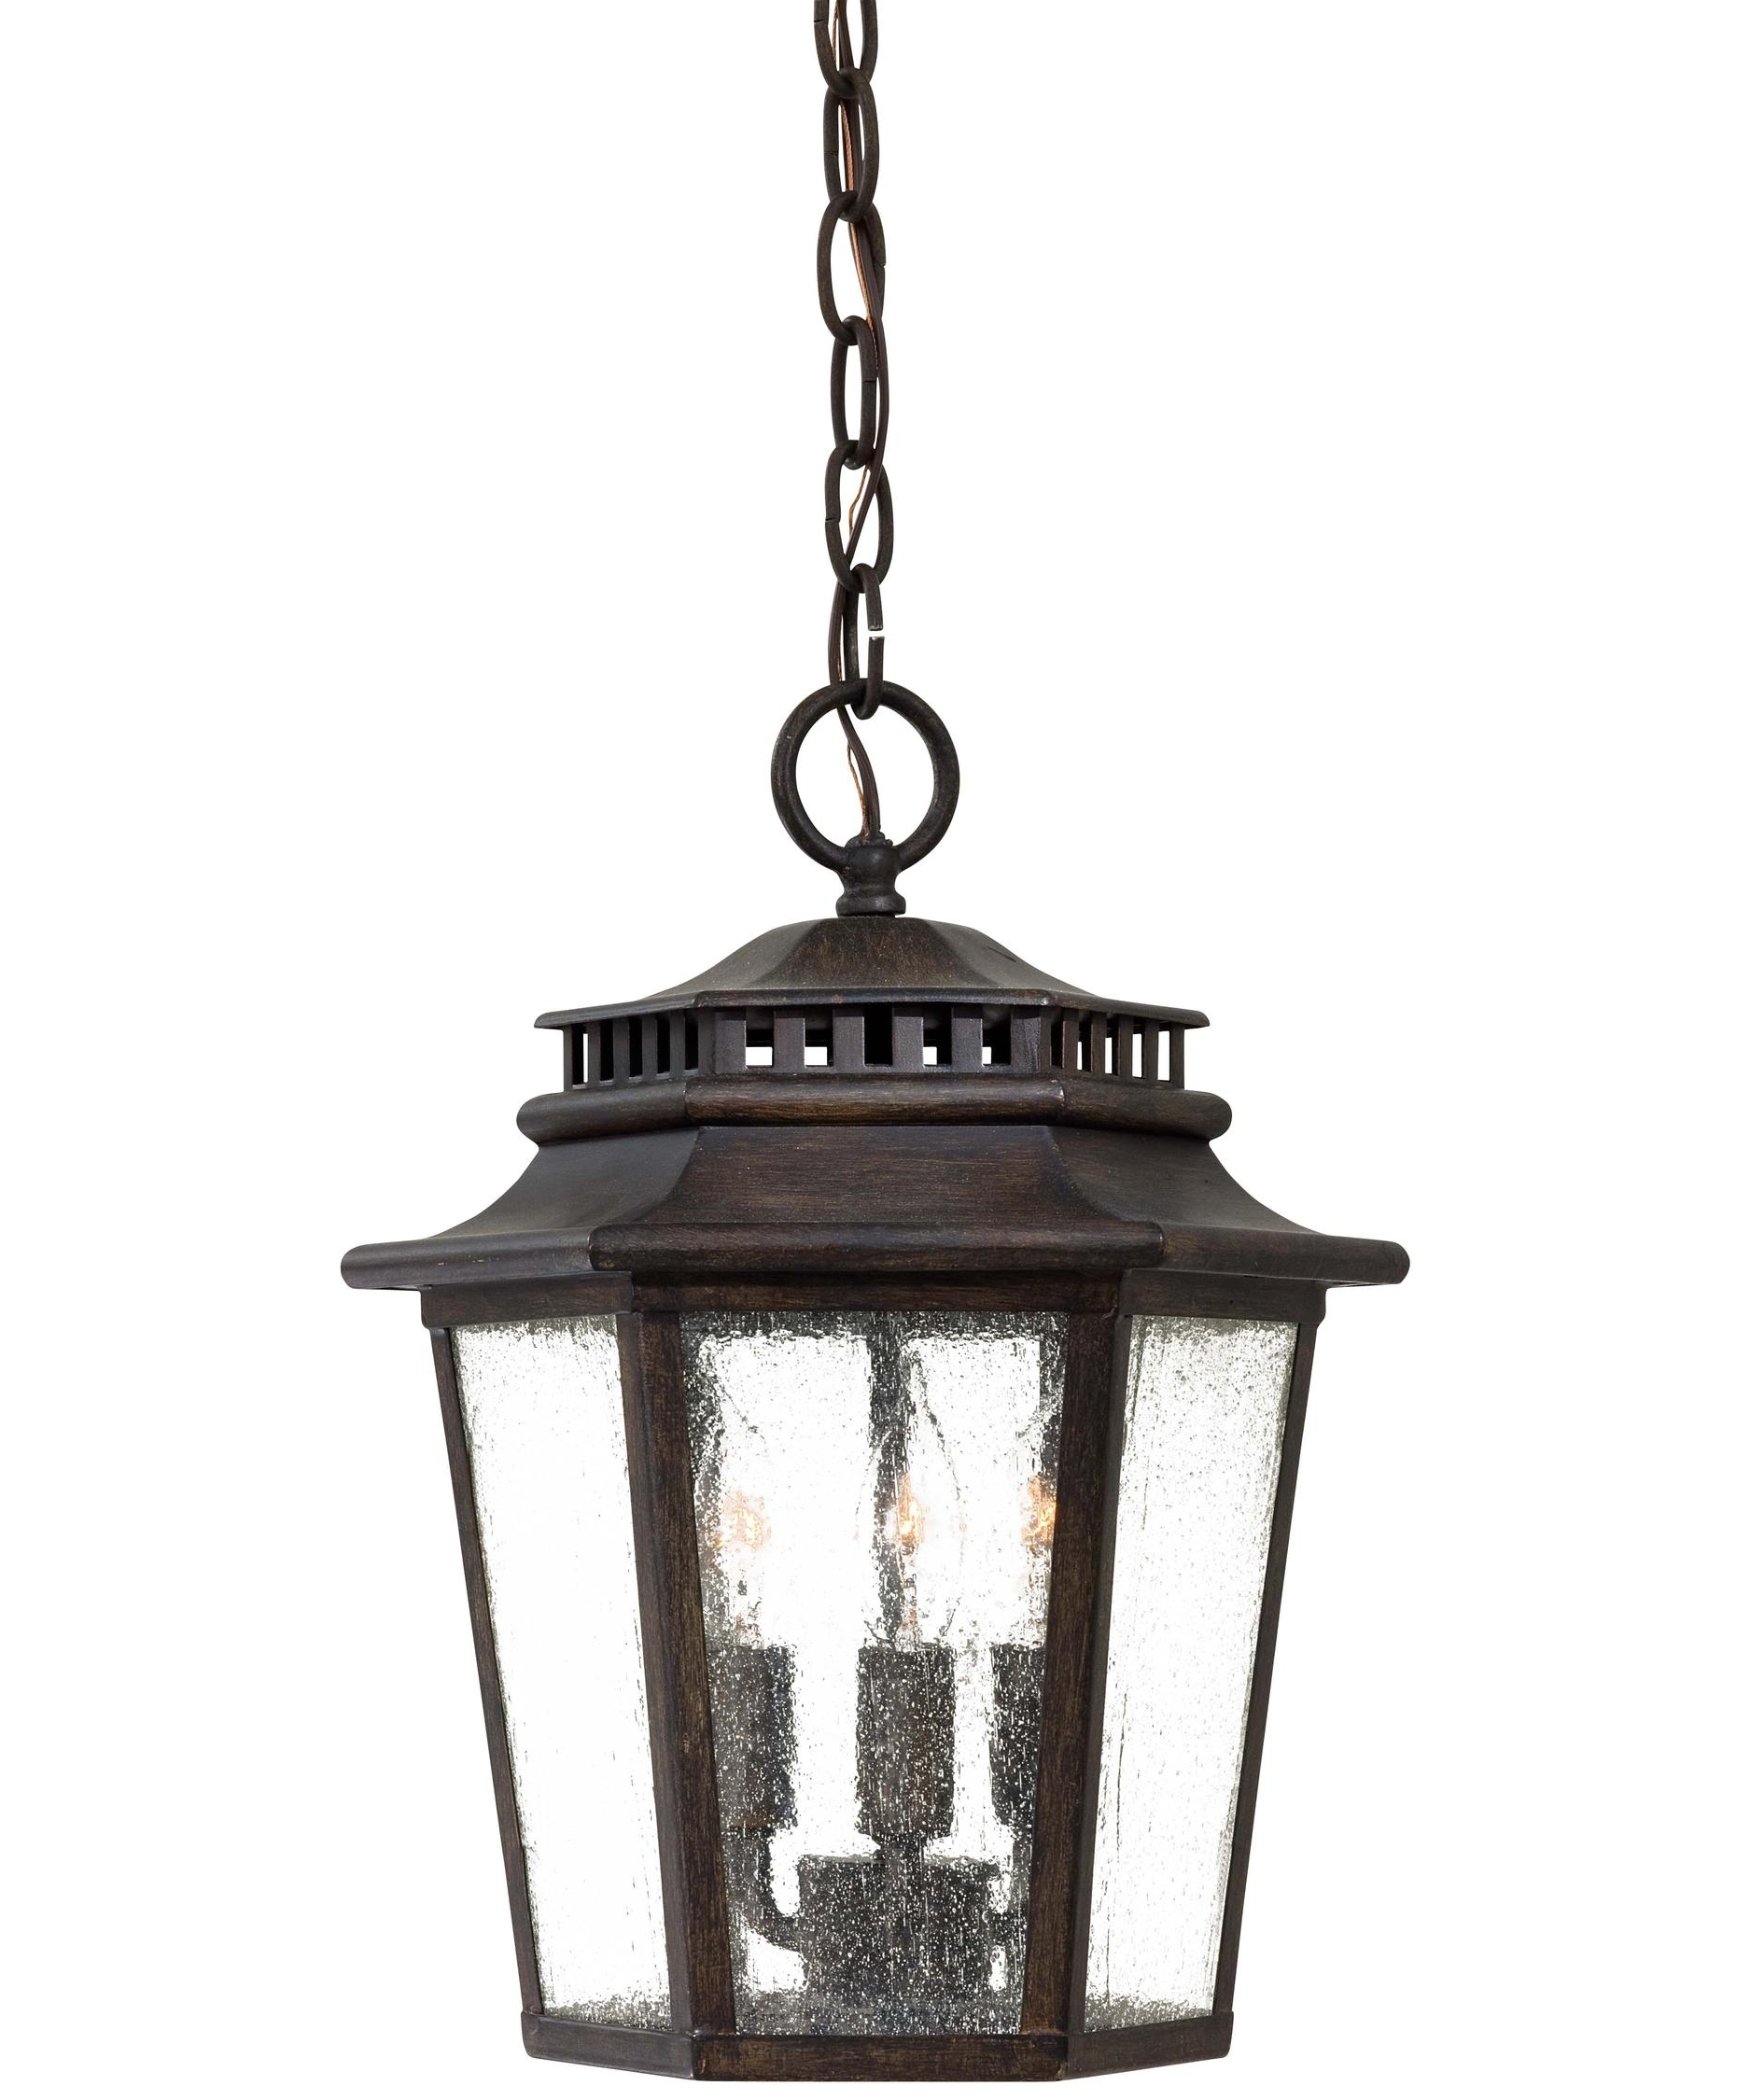 Led Outdoor Hanging Lanterns With Regard To Latest Lighting : Led Outside Lights External Ceiling Light Outdoor Hanging (View 12 of 20)